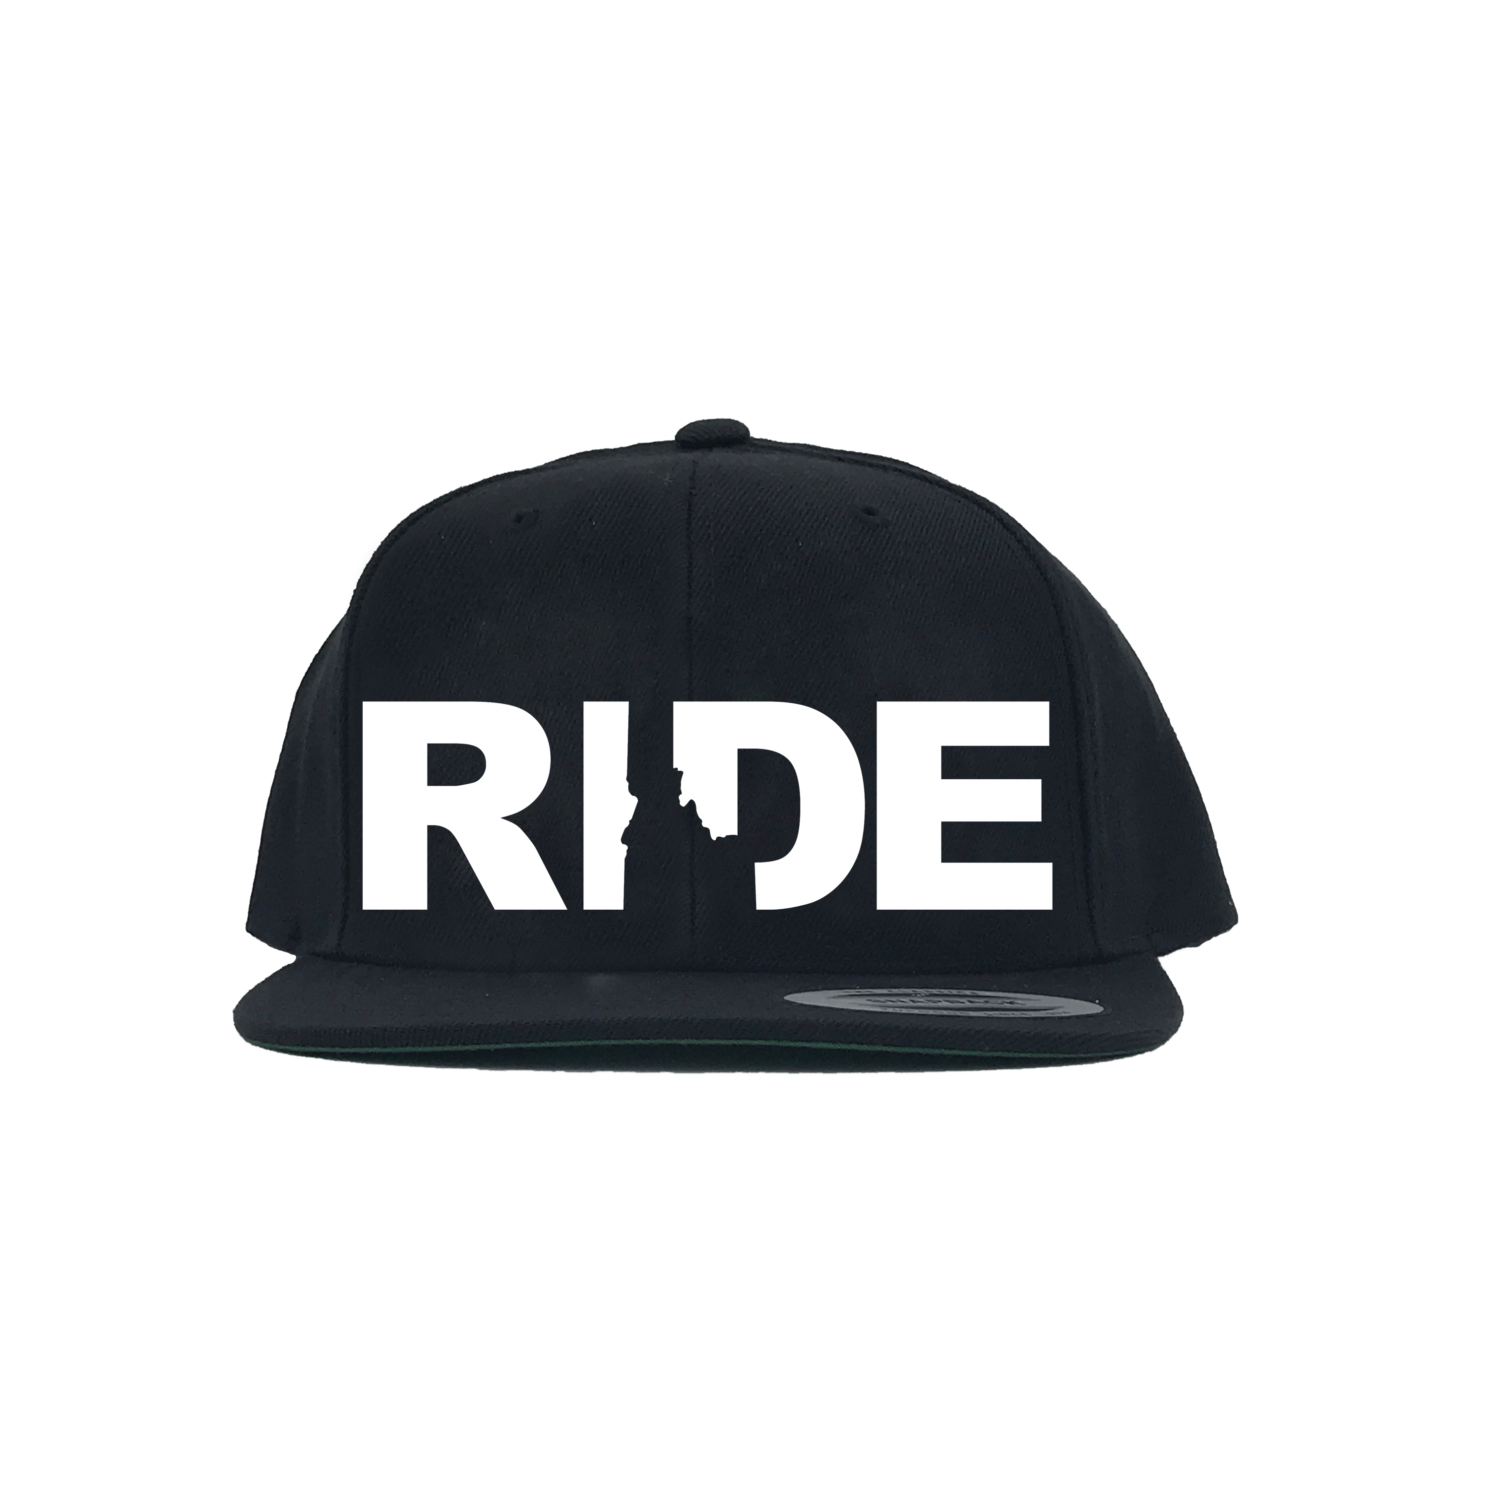 Ride Idaho Classic Embroidered  Snapback Flat Brim Hat Black/White